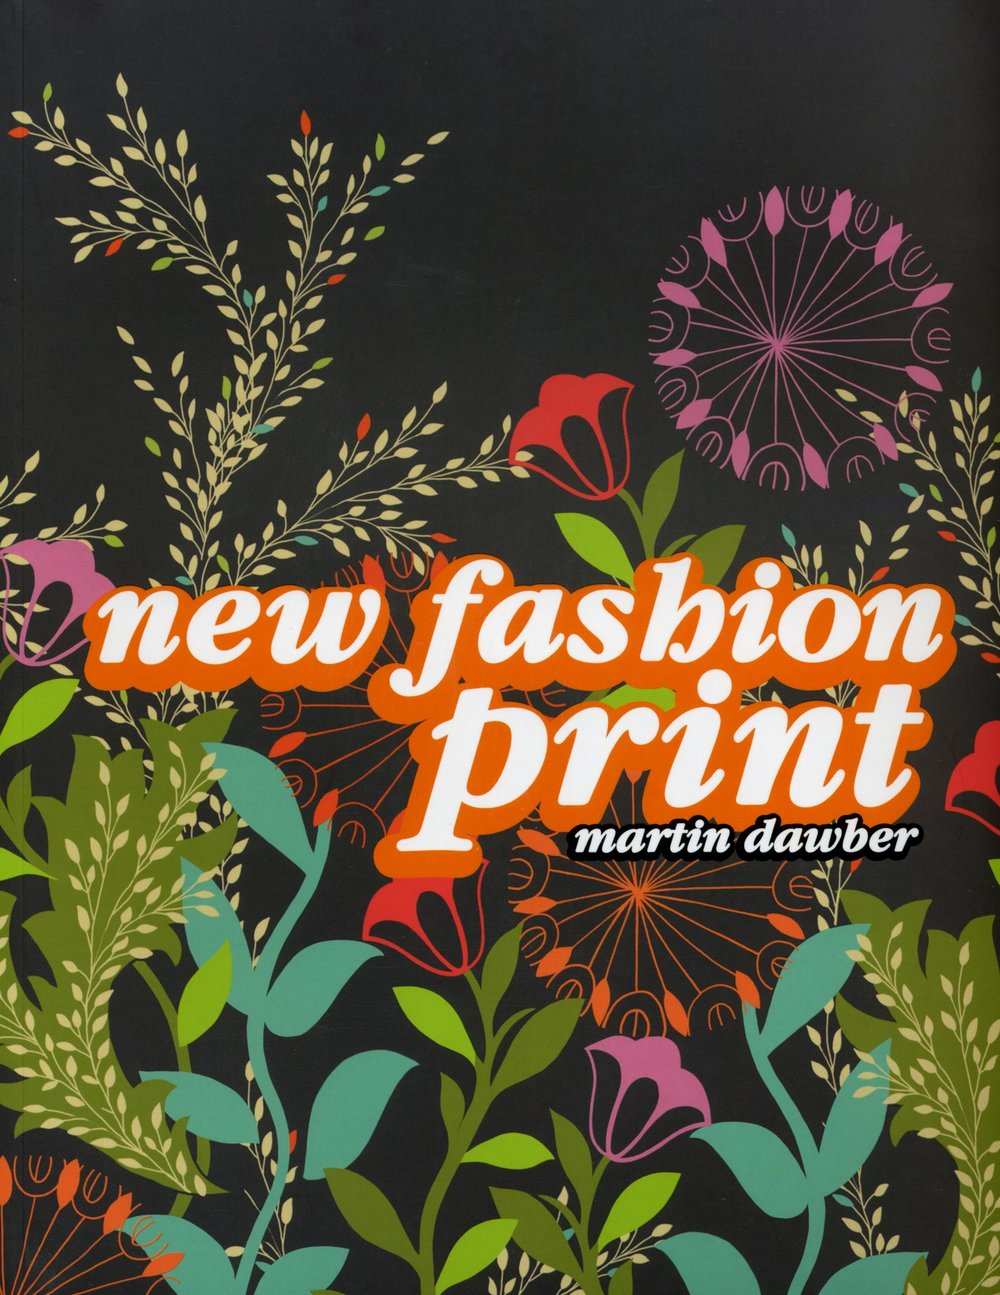 Bam's amazing talent for textile design are second to none and featured in this book.